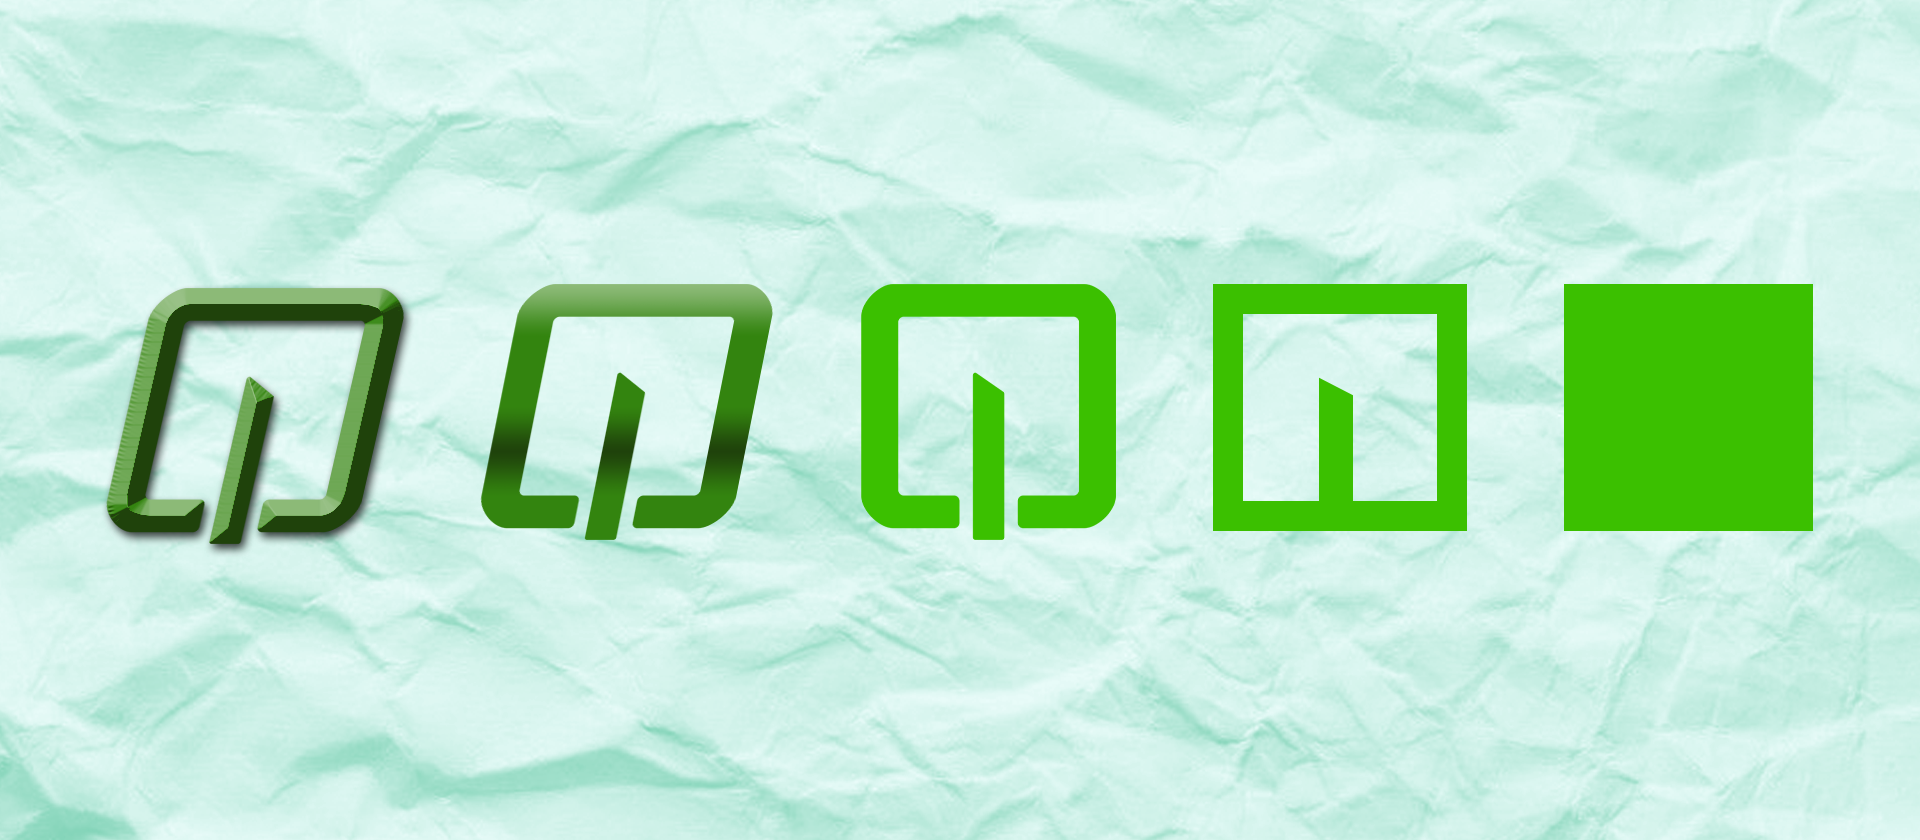 Logo transforming into a green square on top of a cyan paper background